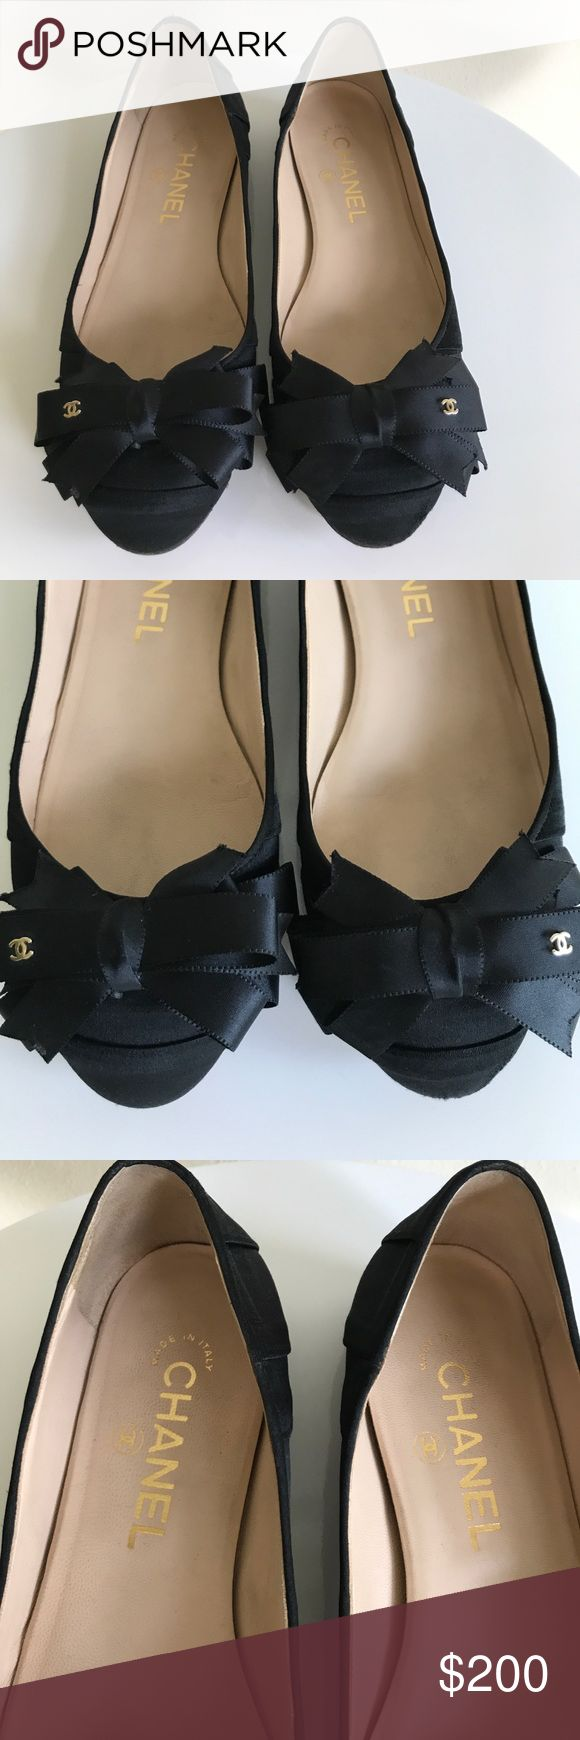 Chanel black satin flats with bow size 36 (6) Chanel black satin flats with bow size 36 (6);  moderate wear on bottom.  Very light wear on satin by heel.  Originally  purchased at Chanel in Houston for $795 CHANEL Shoes Flats & Loafers